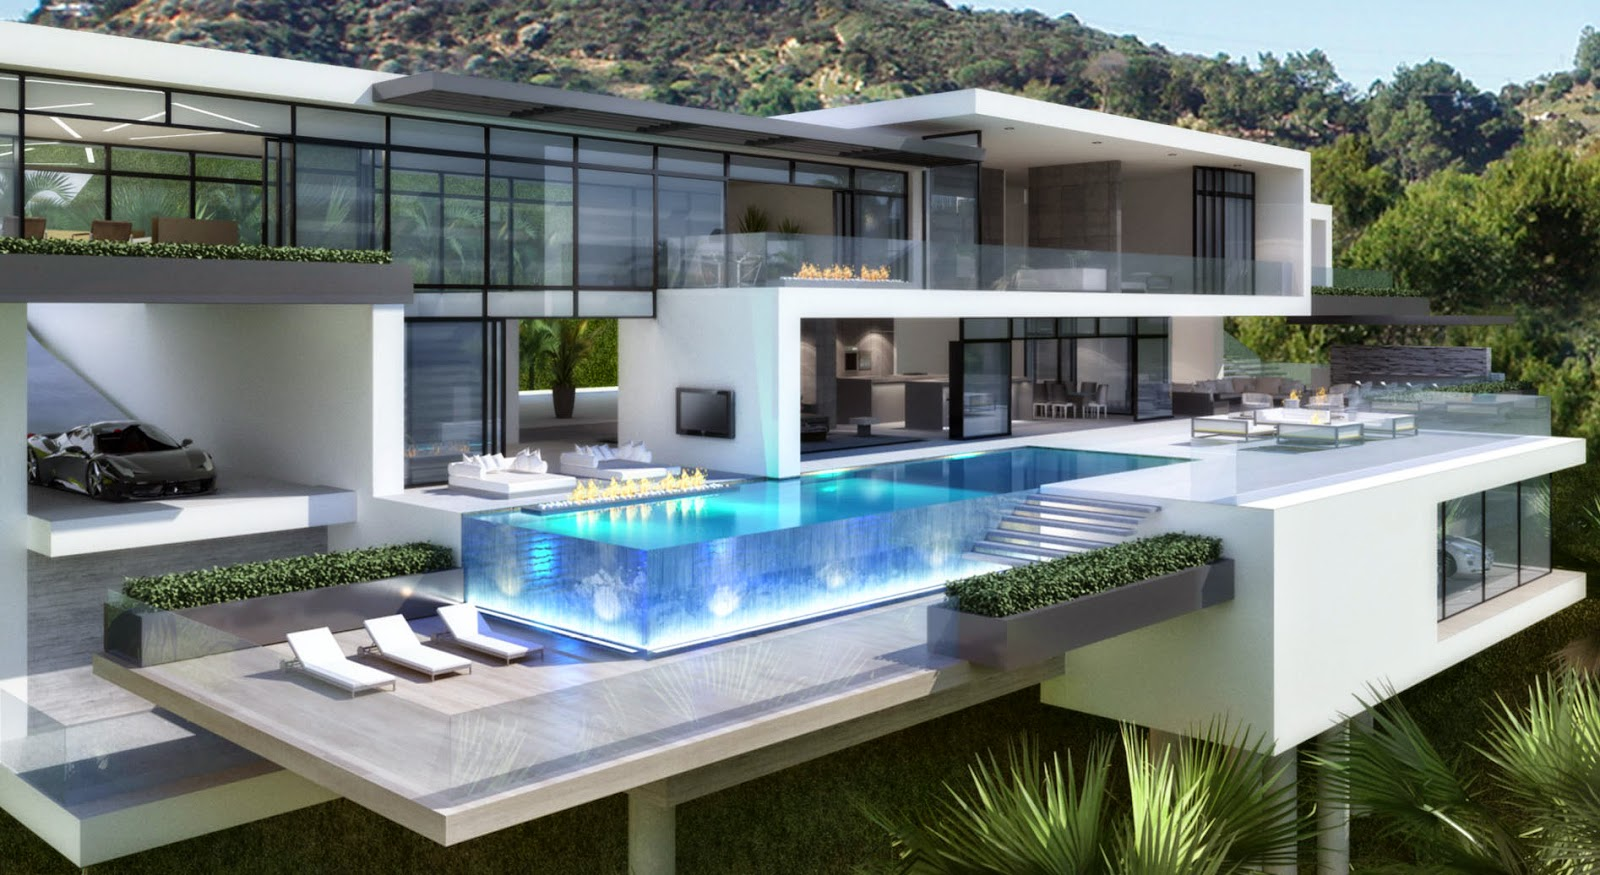 Passion for luxury contemporary mansions on sunset plaza for Mansiones lujosas modernas